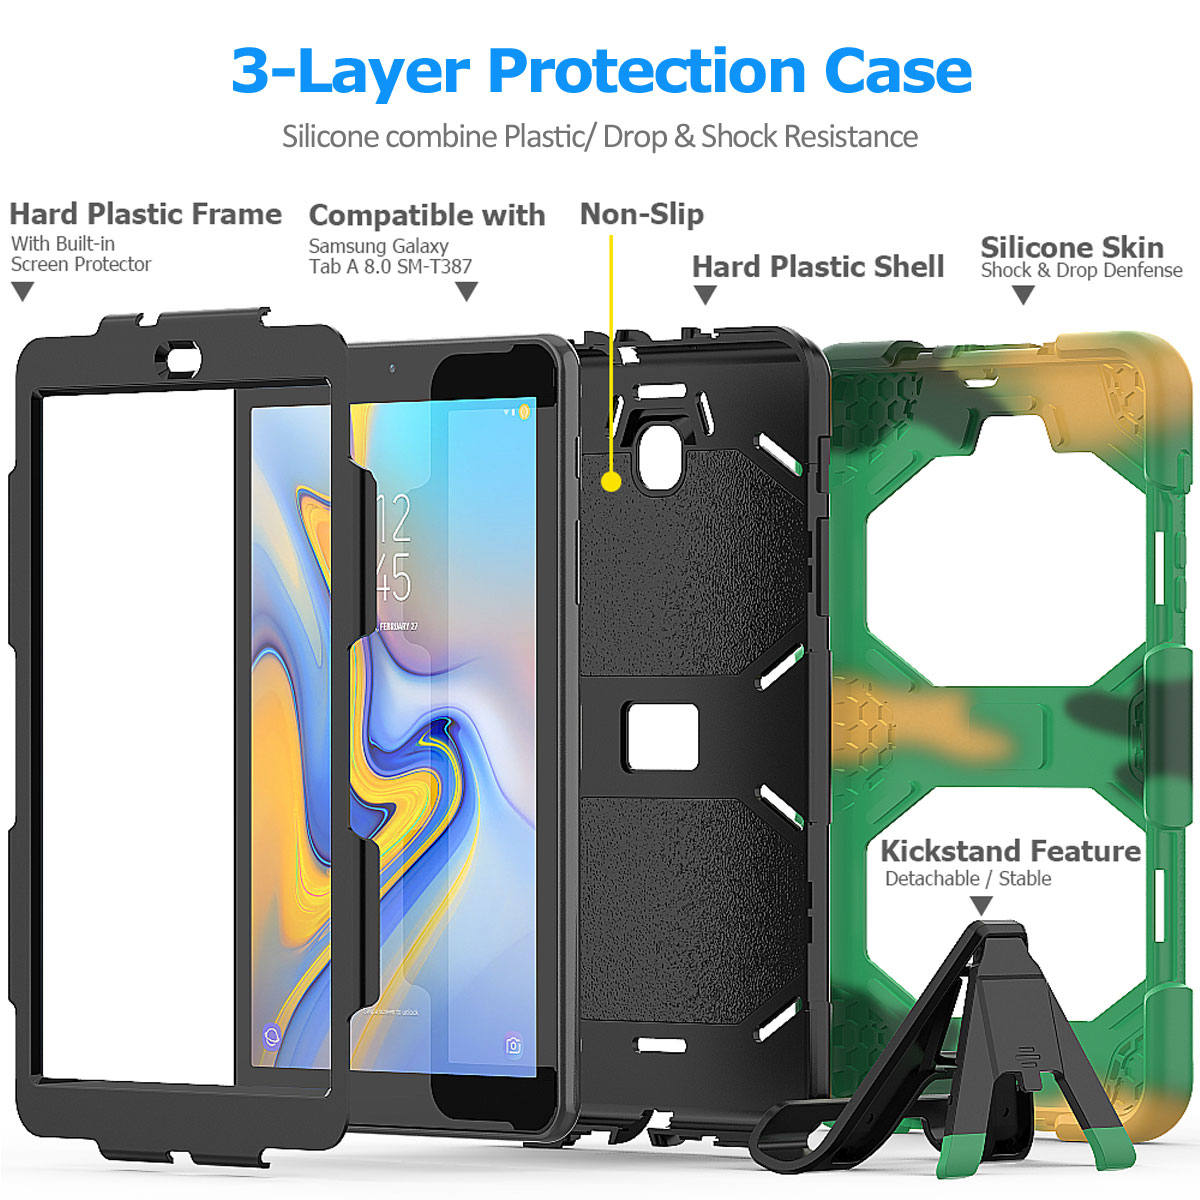 Rugged-Hard-Case-For-Samsung-Galaxy-Tab-A-8-0-2018-SM-T387-with-Screen-Protector thumbnail 21